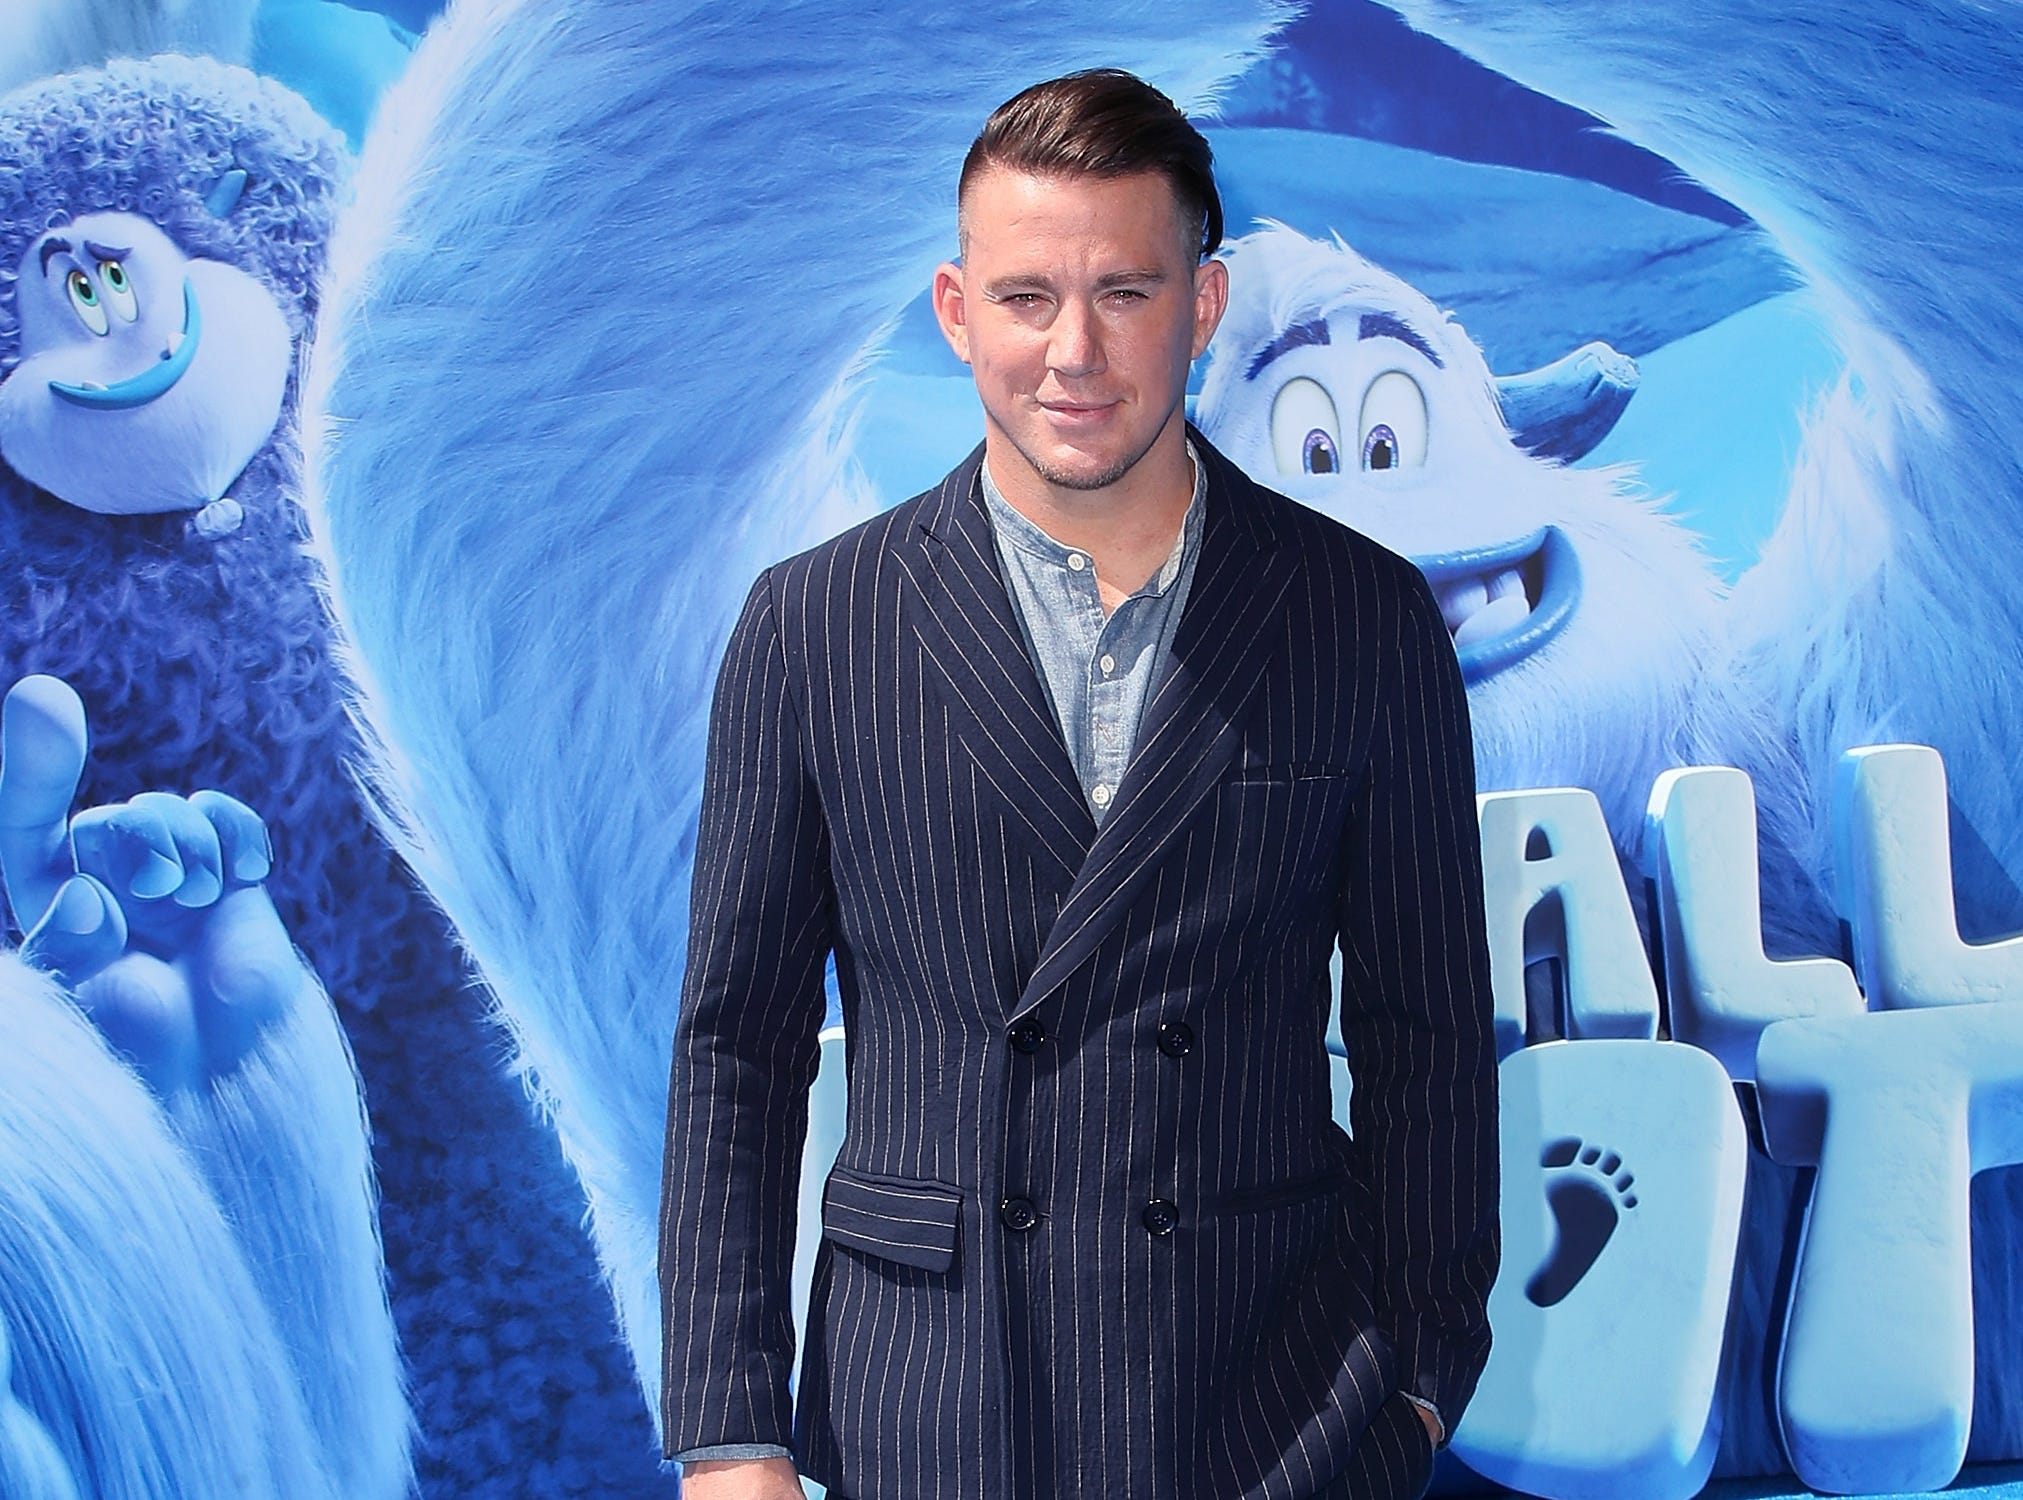 """WESTWOOD, CA - SEPTEMBER 22:  Channing Tatum attends the premiere of Warner Bros. Pictures' """"Smallfoot"""" at Regency Village Theatre on September 22, 2018 in Westwood, California.  (Photo by David Livingston/Getty Images) ORG XMIT: 775223558 ORIG FILE ID: 1038014524"""